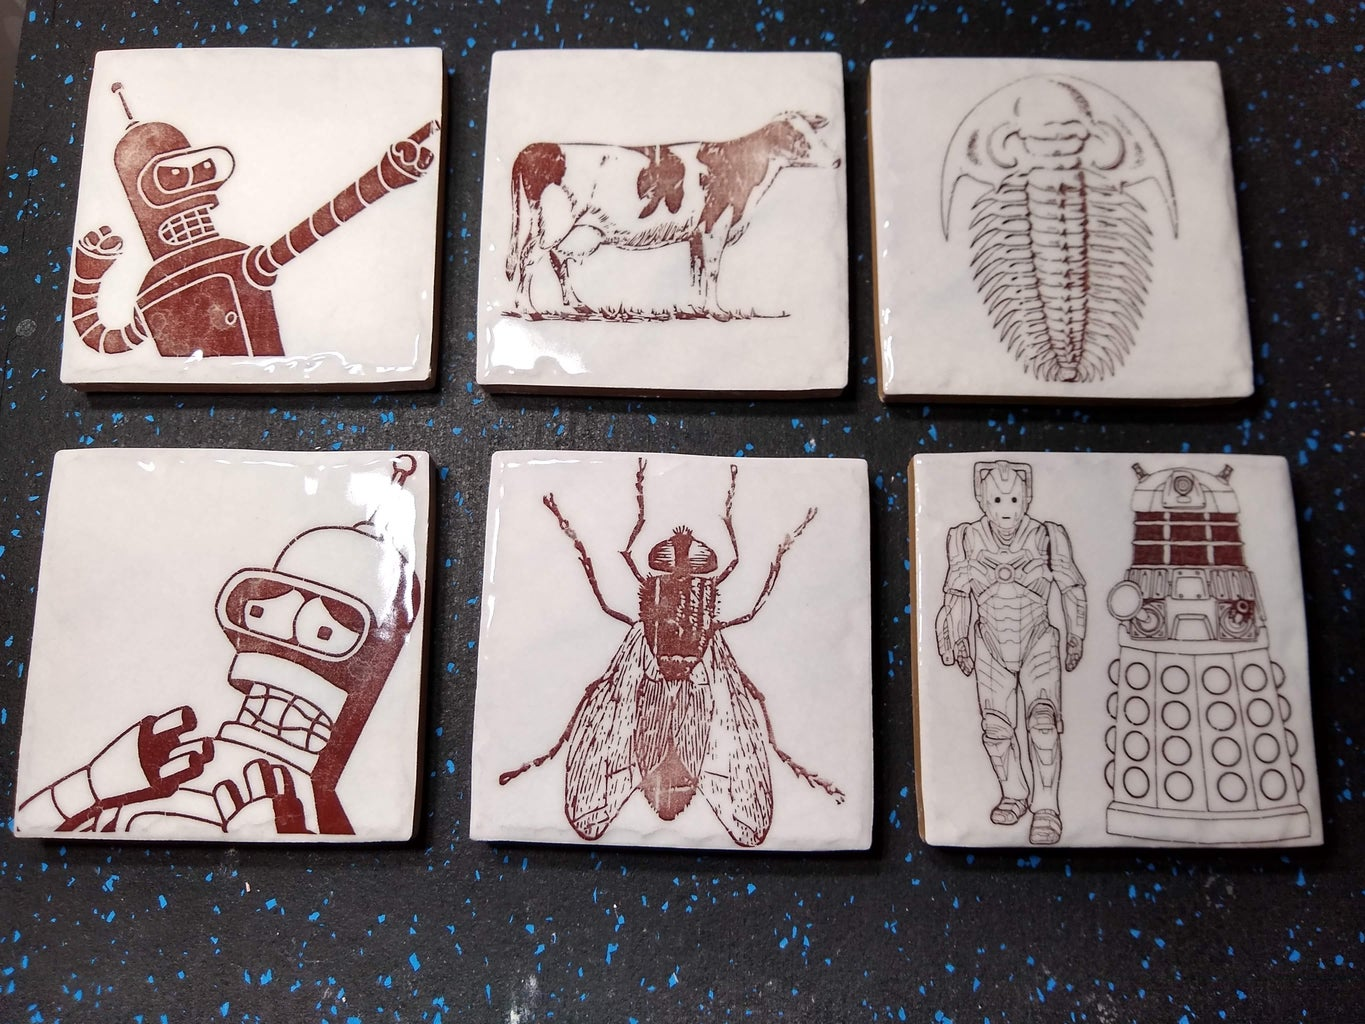 DIY Ceramic Decals From Your Laser Printer (Update: and Magnetic Tape)